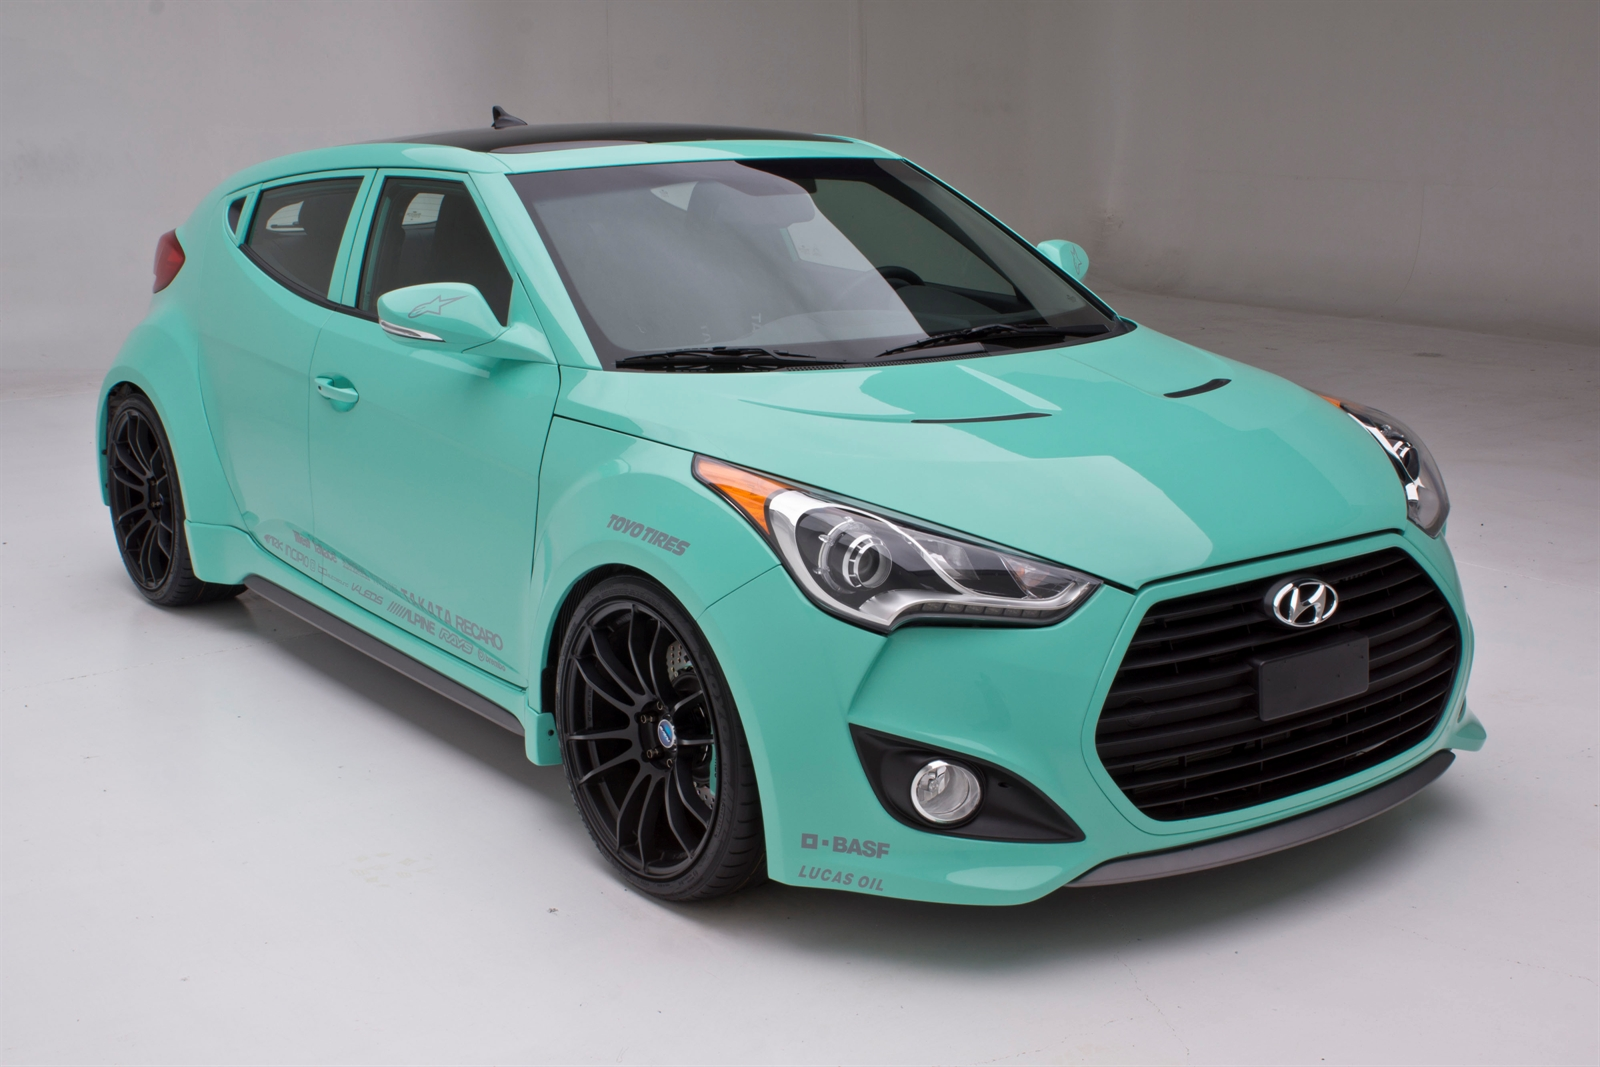 hyundai veloster turbo jp edition concept at 2012 sema. Black Bedroom Furniture Sets. Home Design Ideas